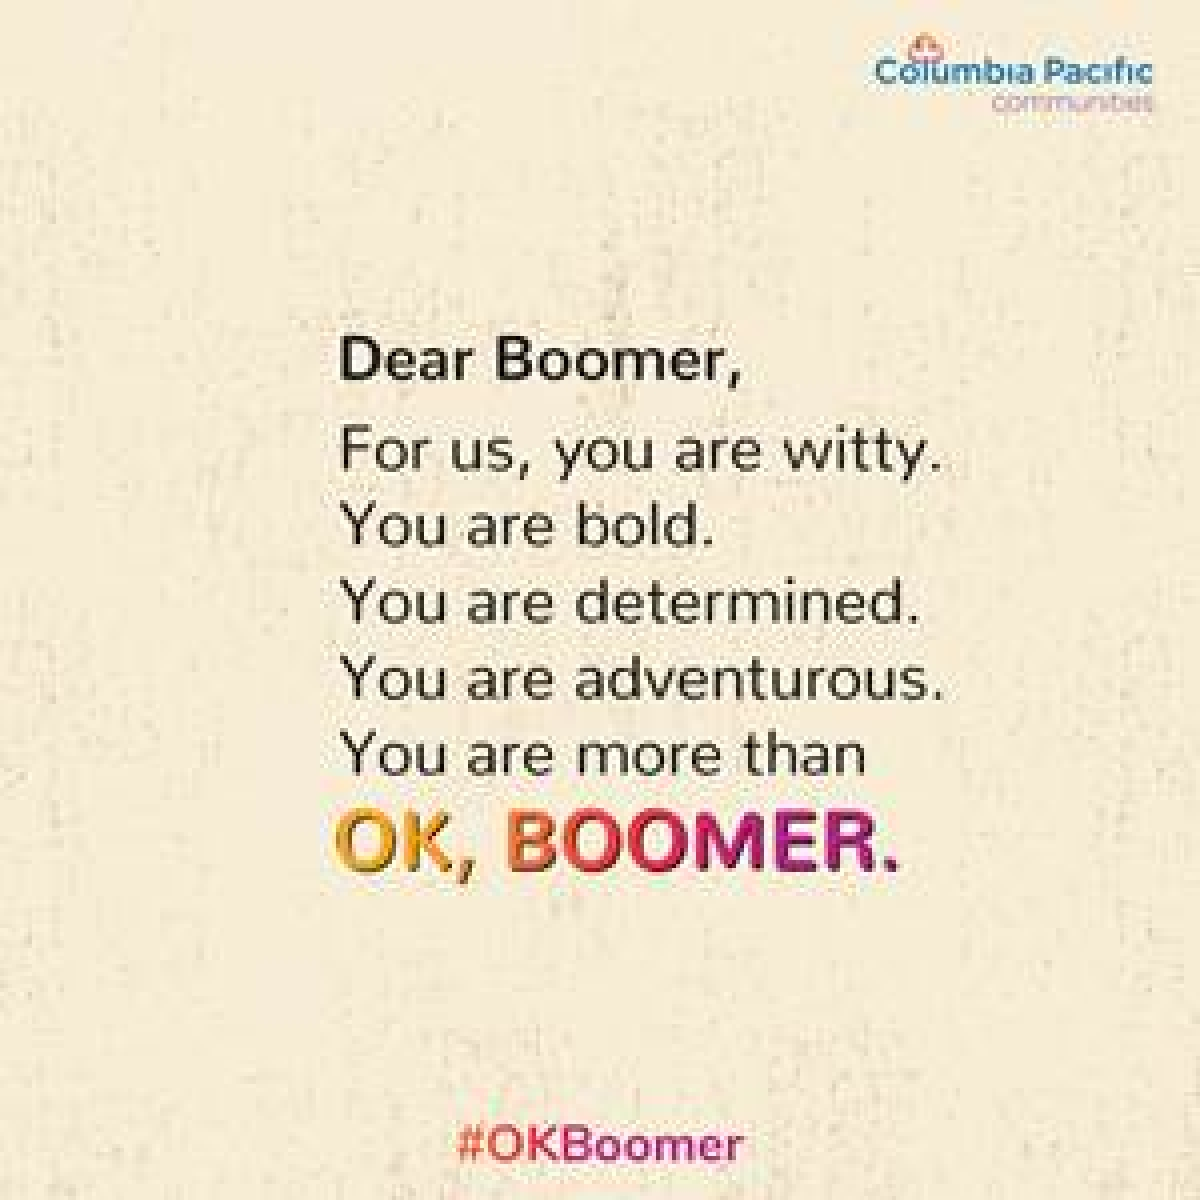 'OK Boomer', a campaign by Columbia Pacific Communities encourages engagement with Baby Boomers